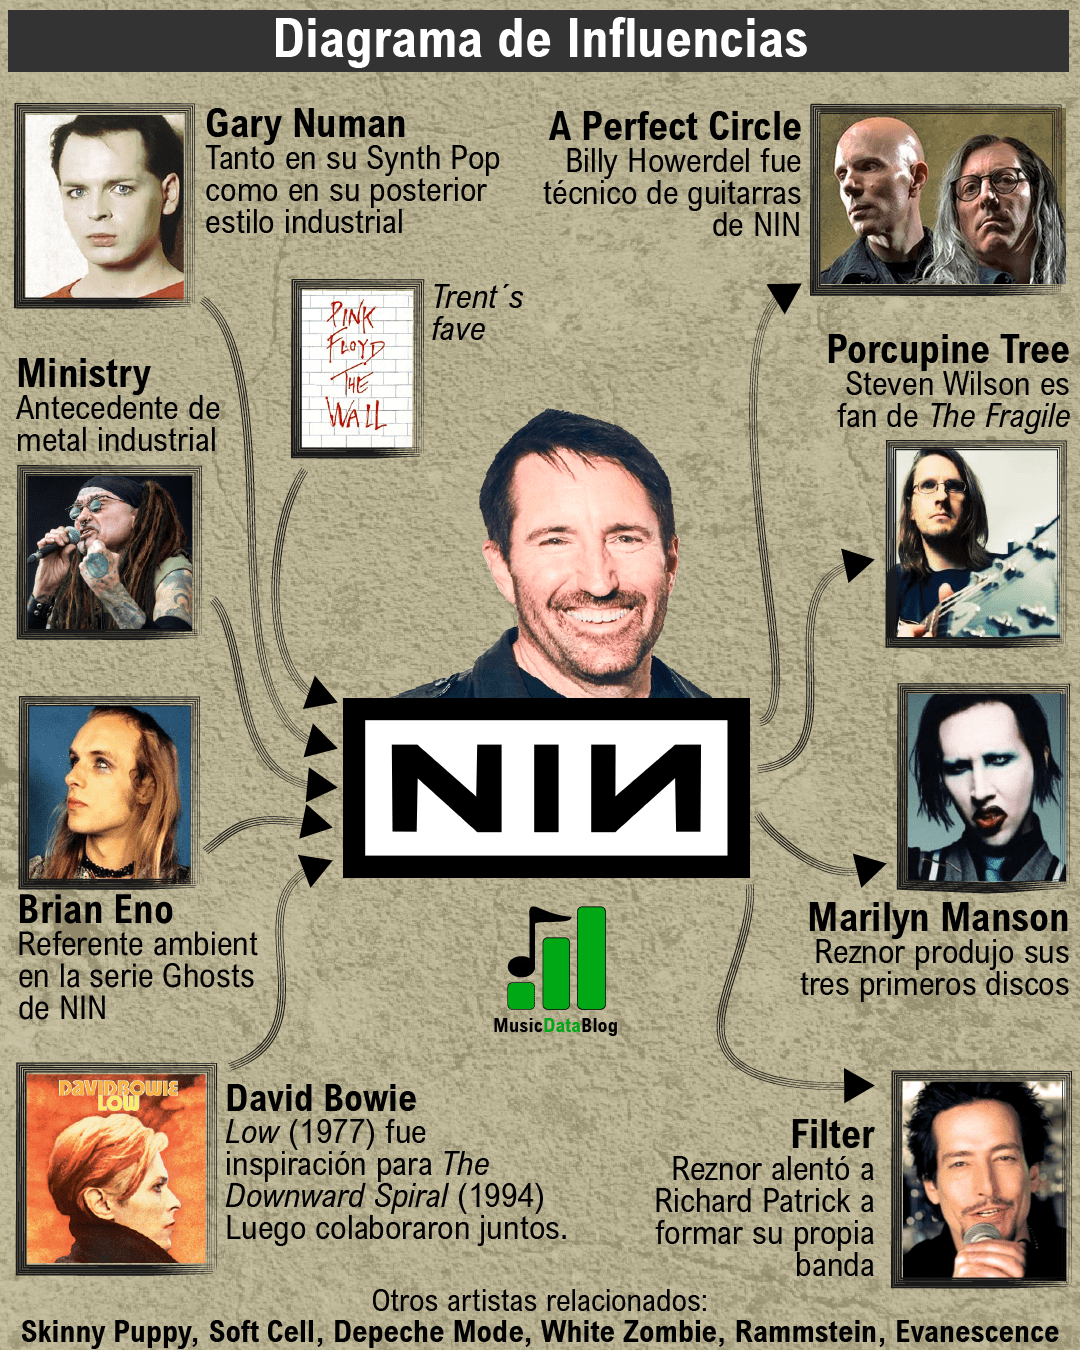 nine inch nails influencias infografia